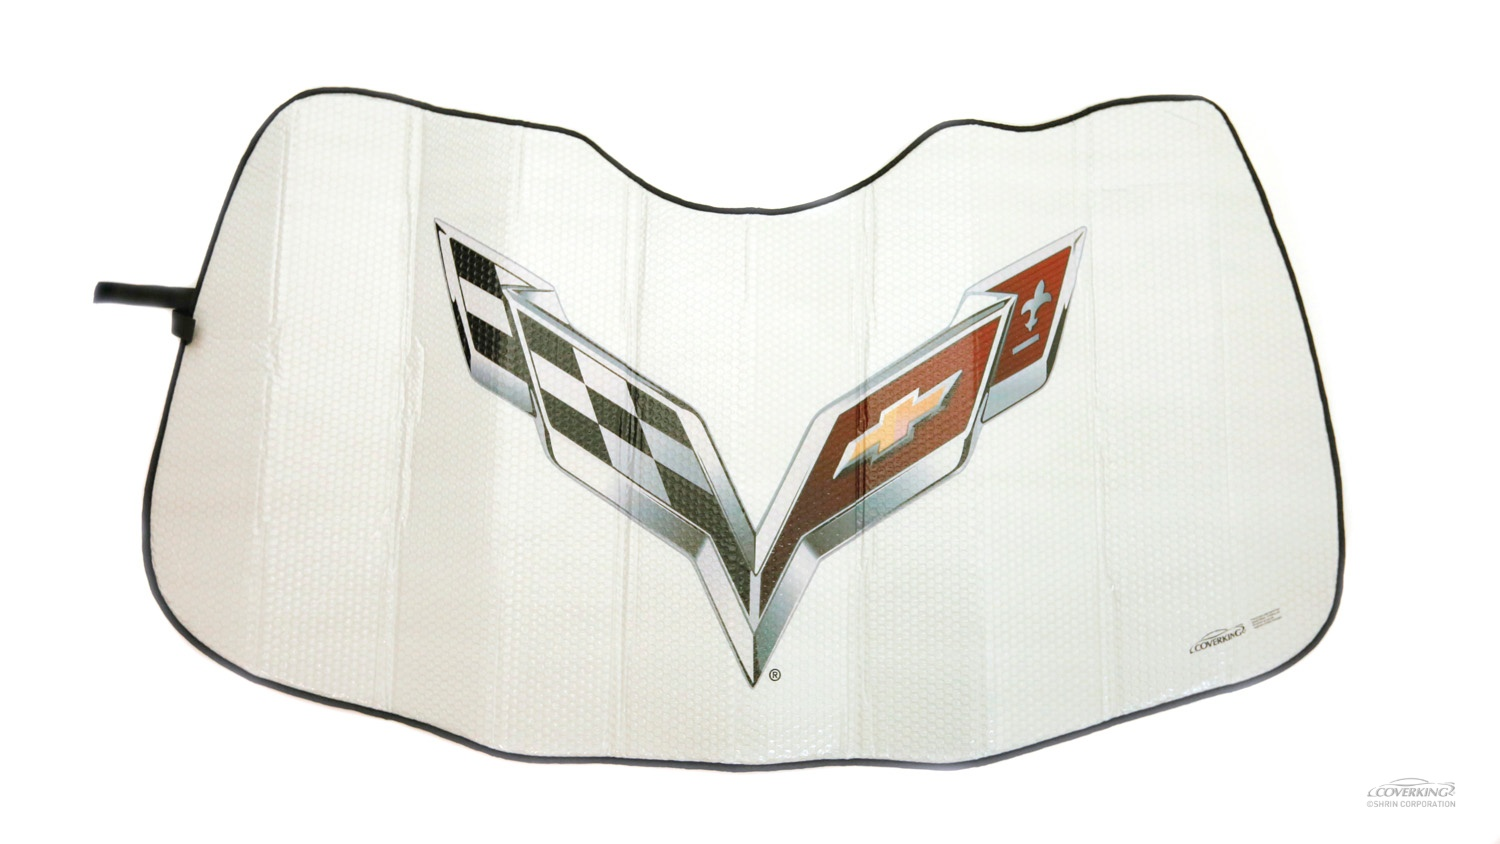 C7 Corvette flag Emblem MODA Folding Graphic Corvette� Sunshield�, Solar Windshield Shade